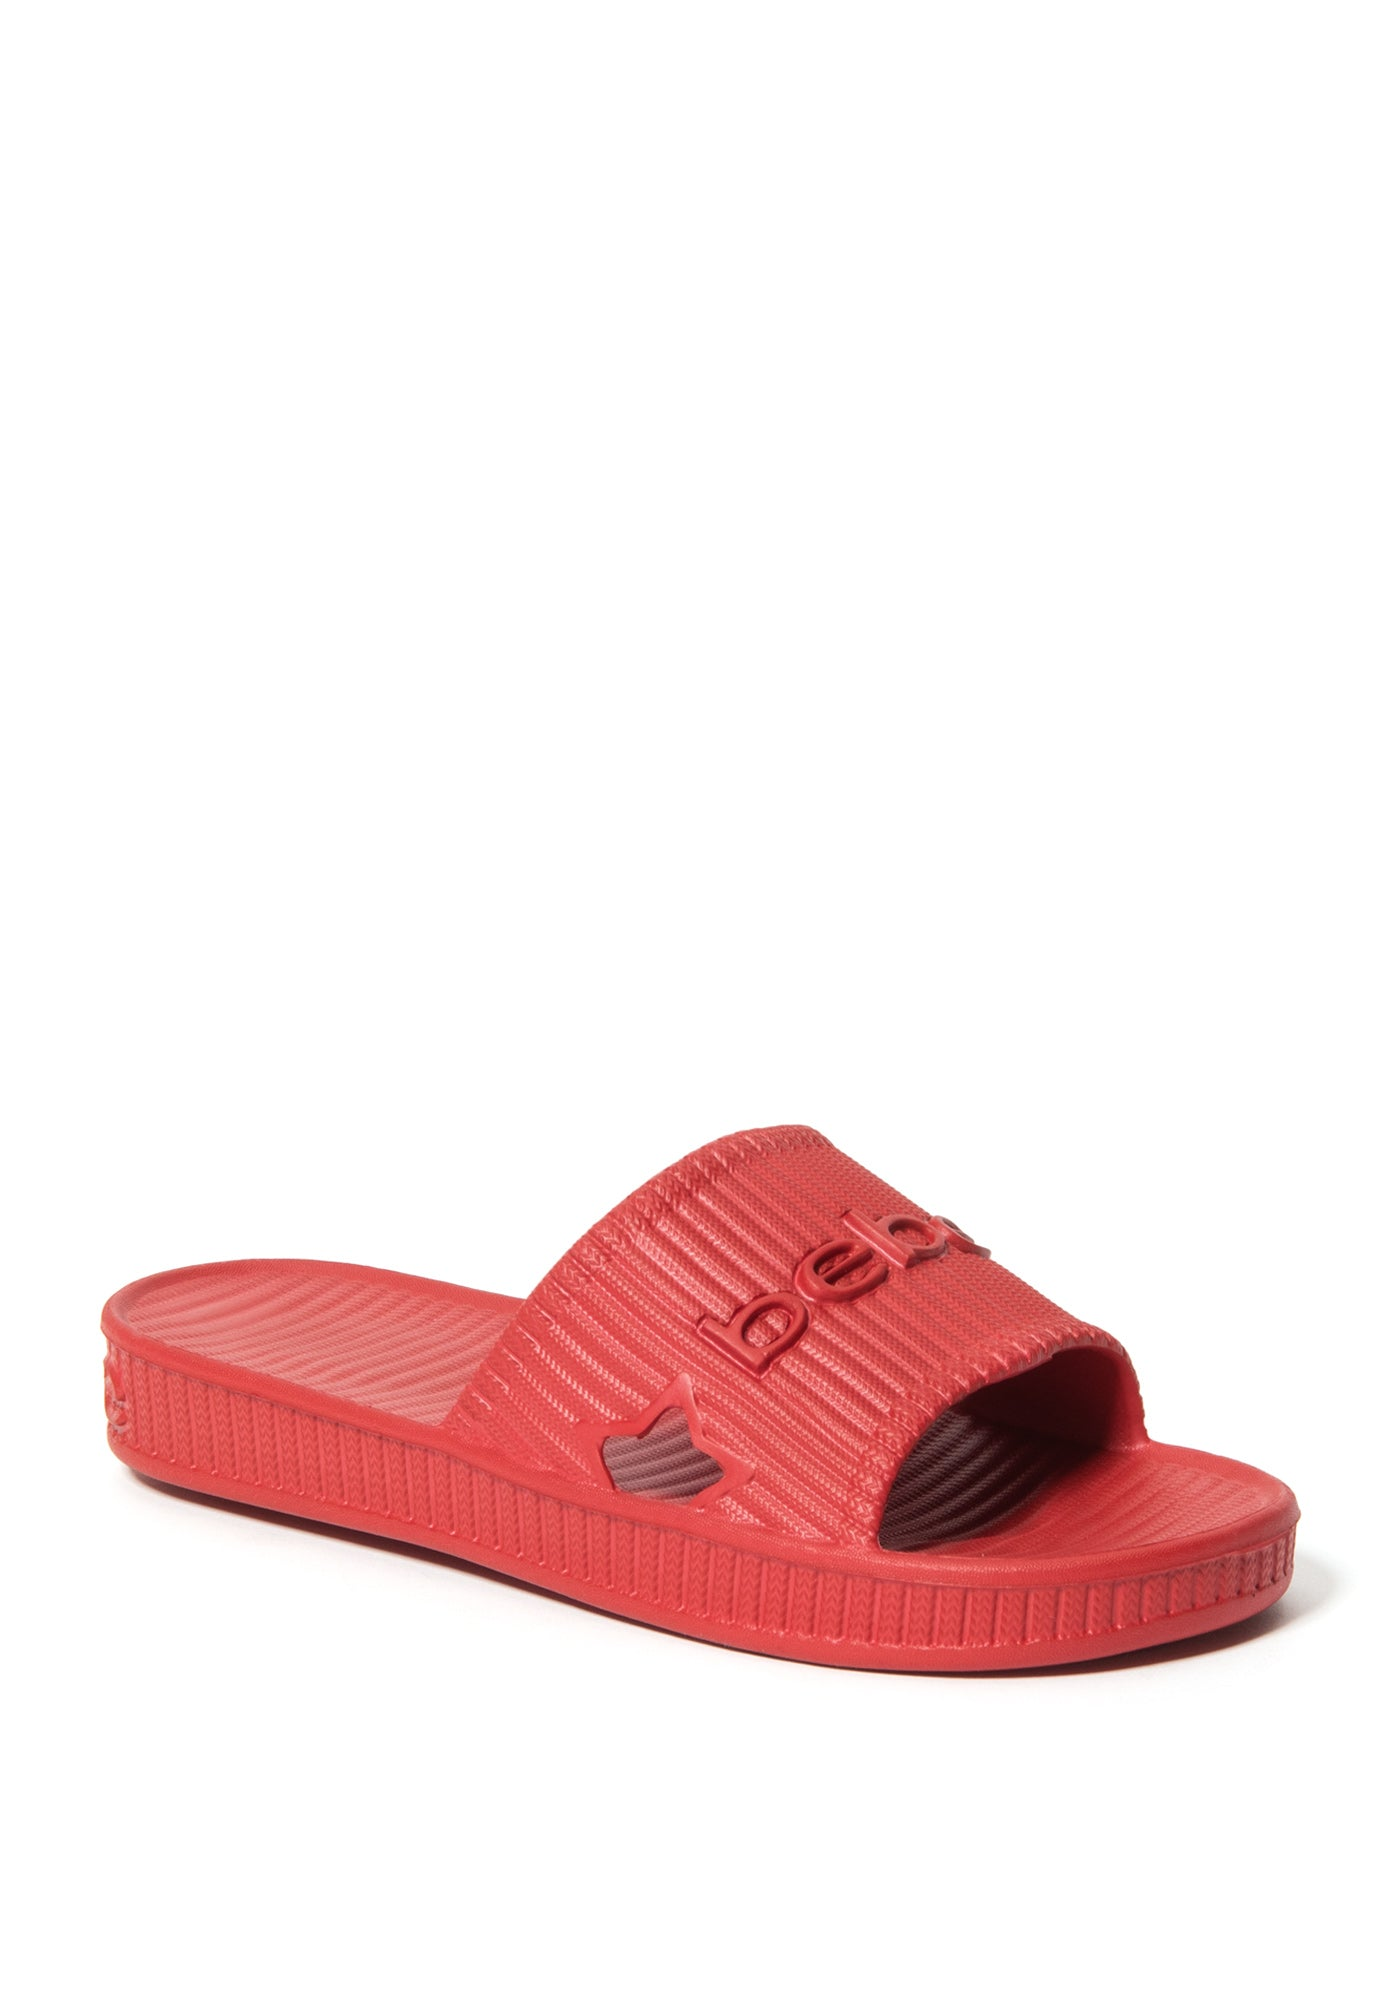 Bebe Women's Craze Logo Slides Shoe, Size 6 in Red O Synthetic